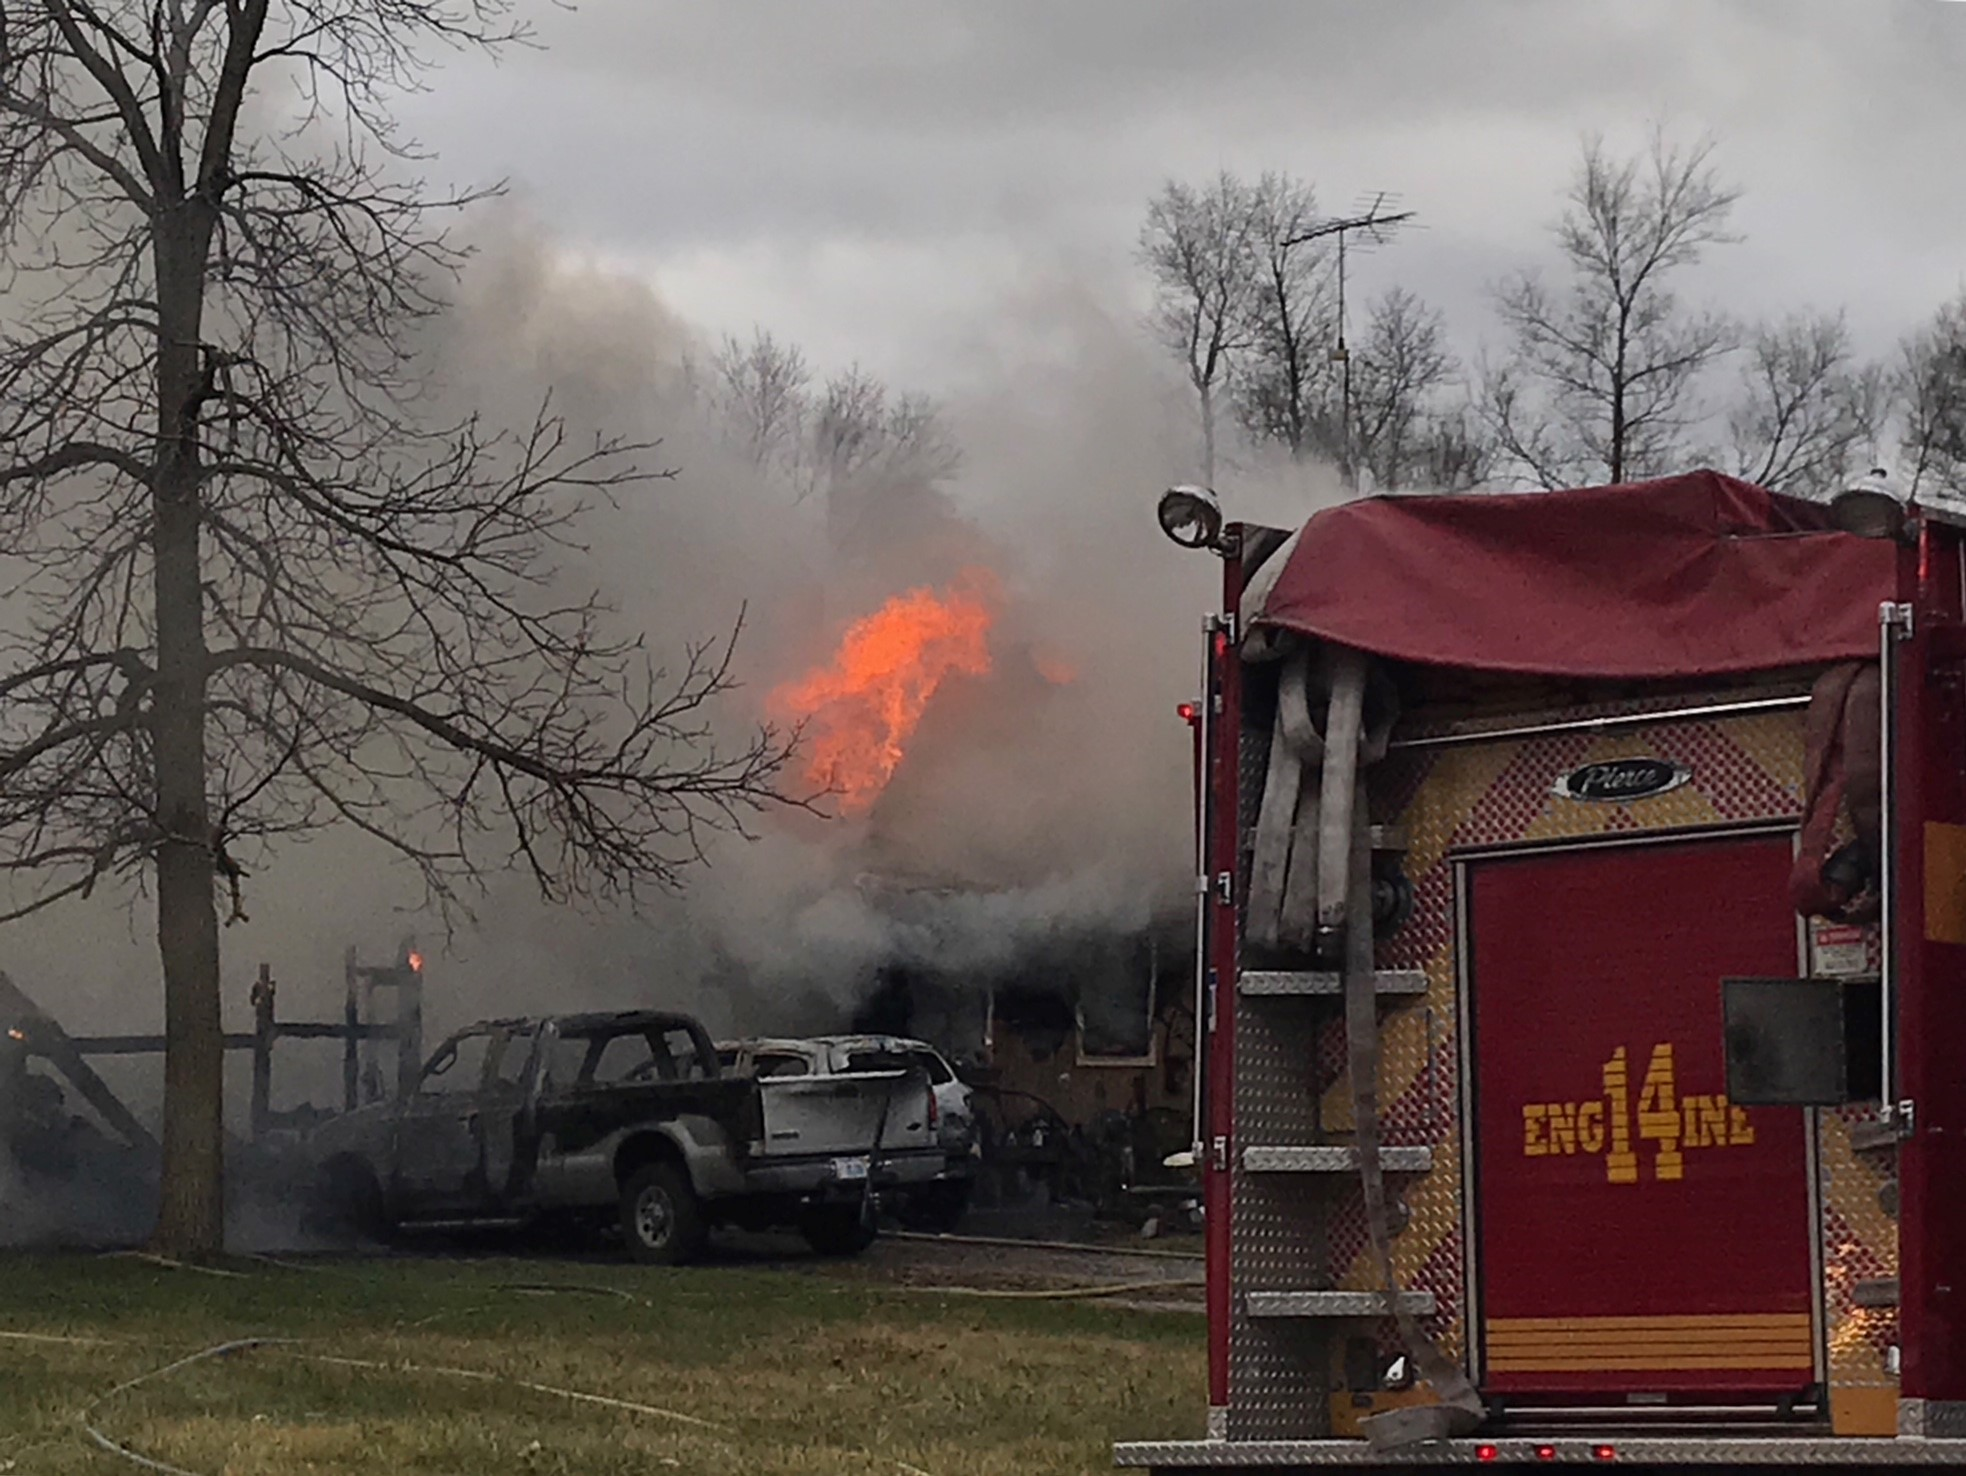 Family members say a man is dead following a house fire. (Photo Credit: Andrew Fergerson)